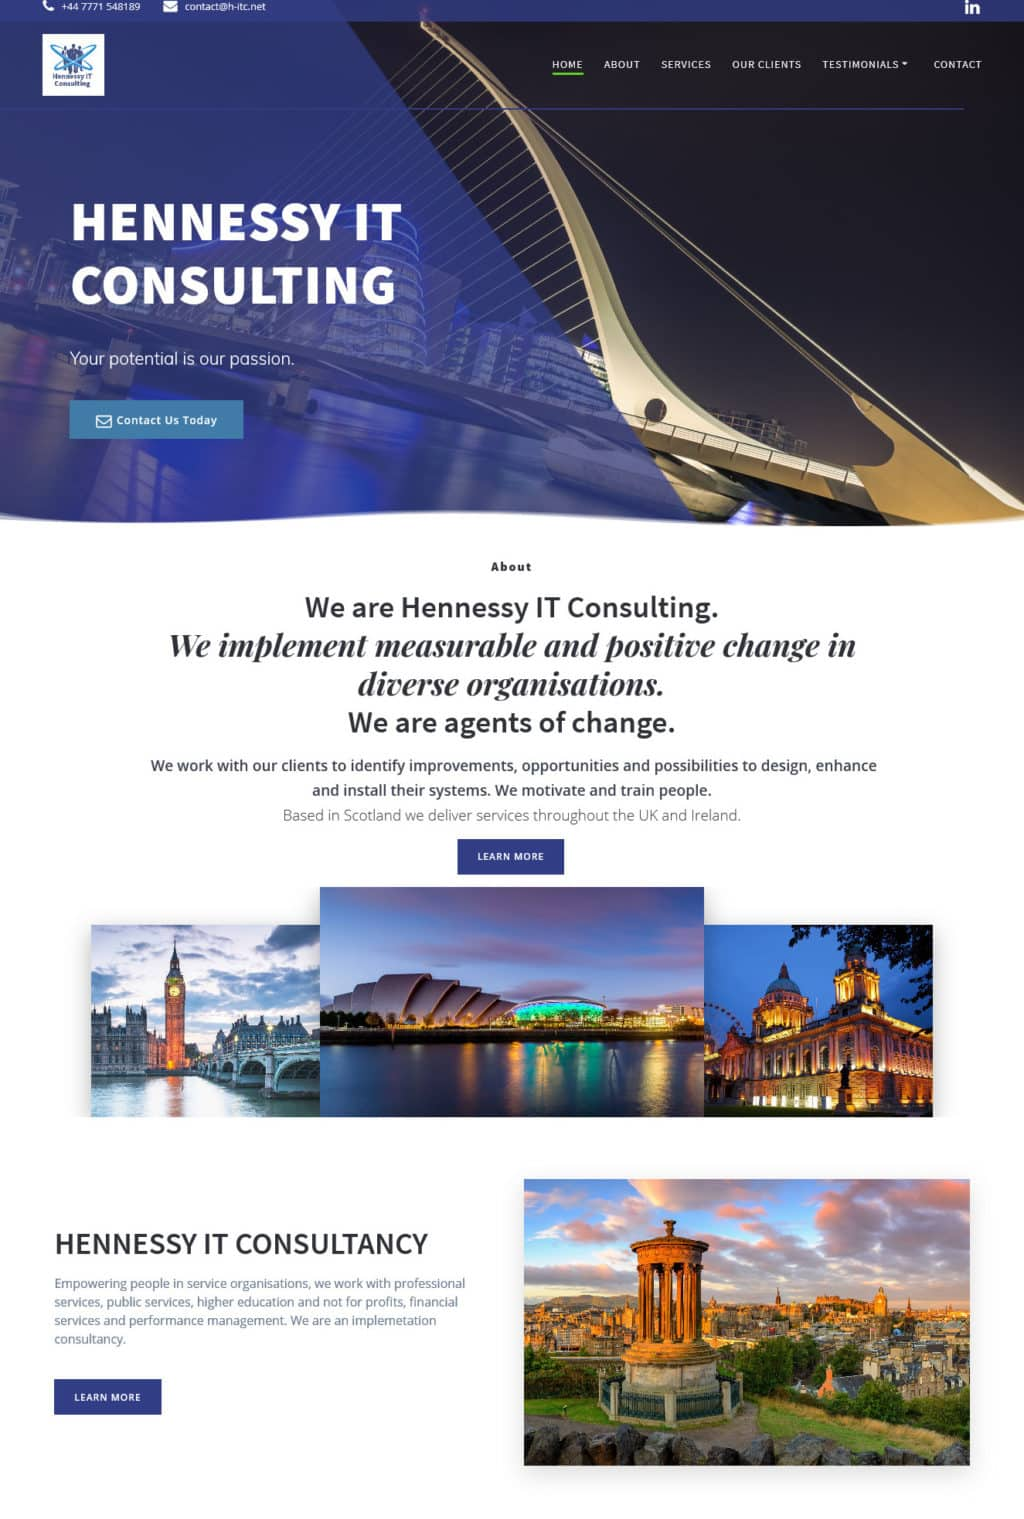 Hennessyitconsulting.com new website